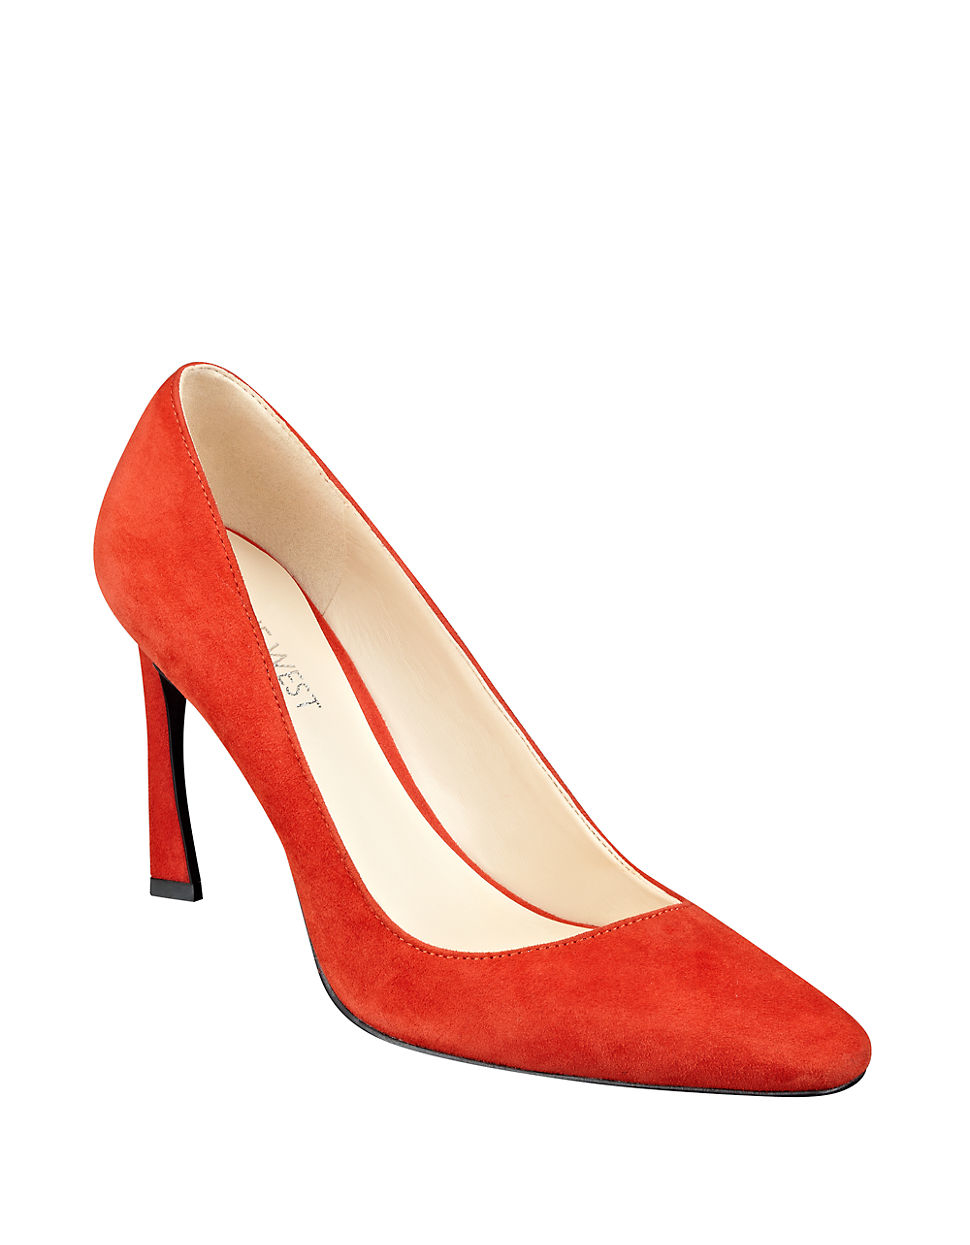 Find red suede pumps at ShopStyle. Shop the latest collection of red suede pumps from the most popular stores - all in one place.